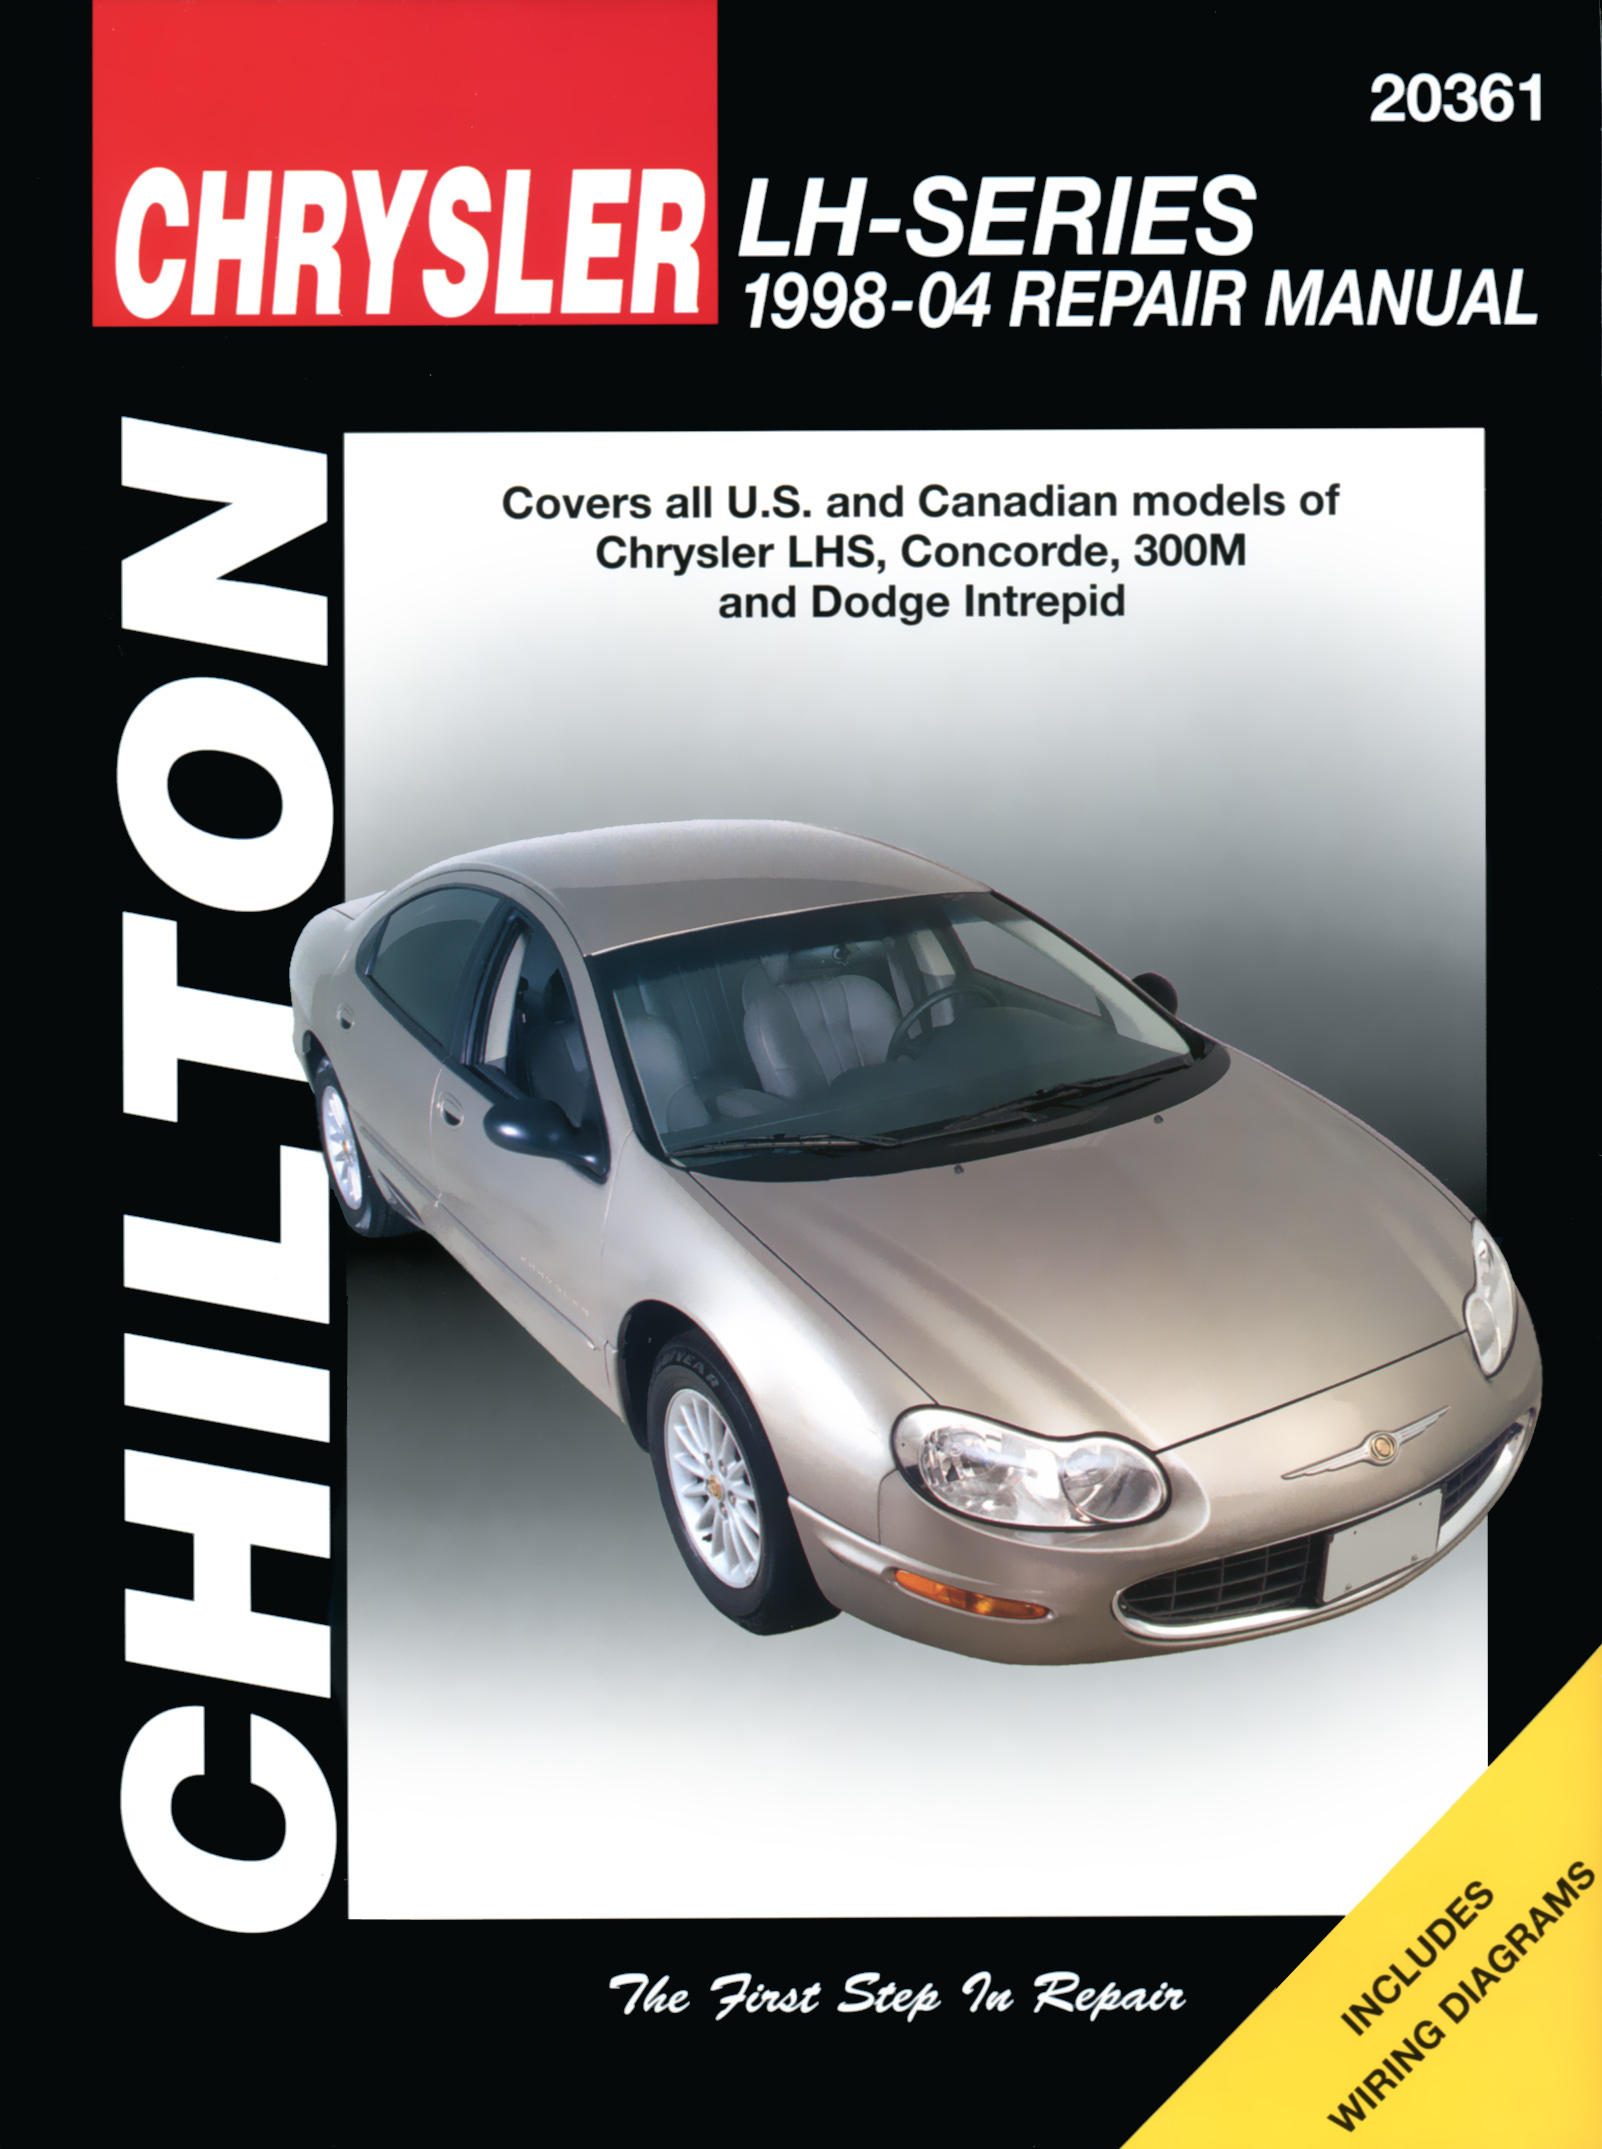 Chrysler LH-Series including LHS, Concorde, 300M & Dodge Intrepid (1998-04) Chilton Repair Manual (USA) from Haynes Manuals US